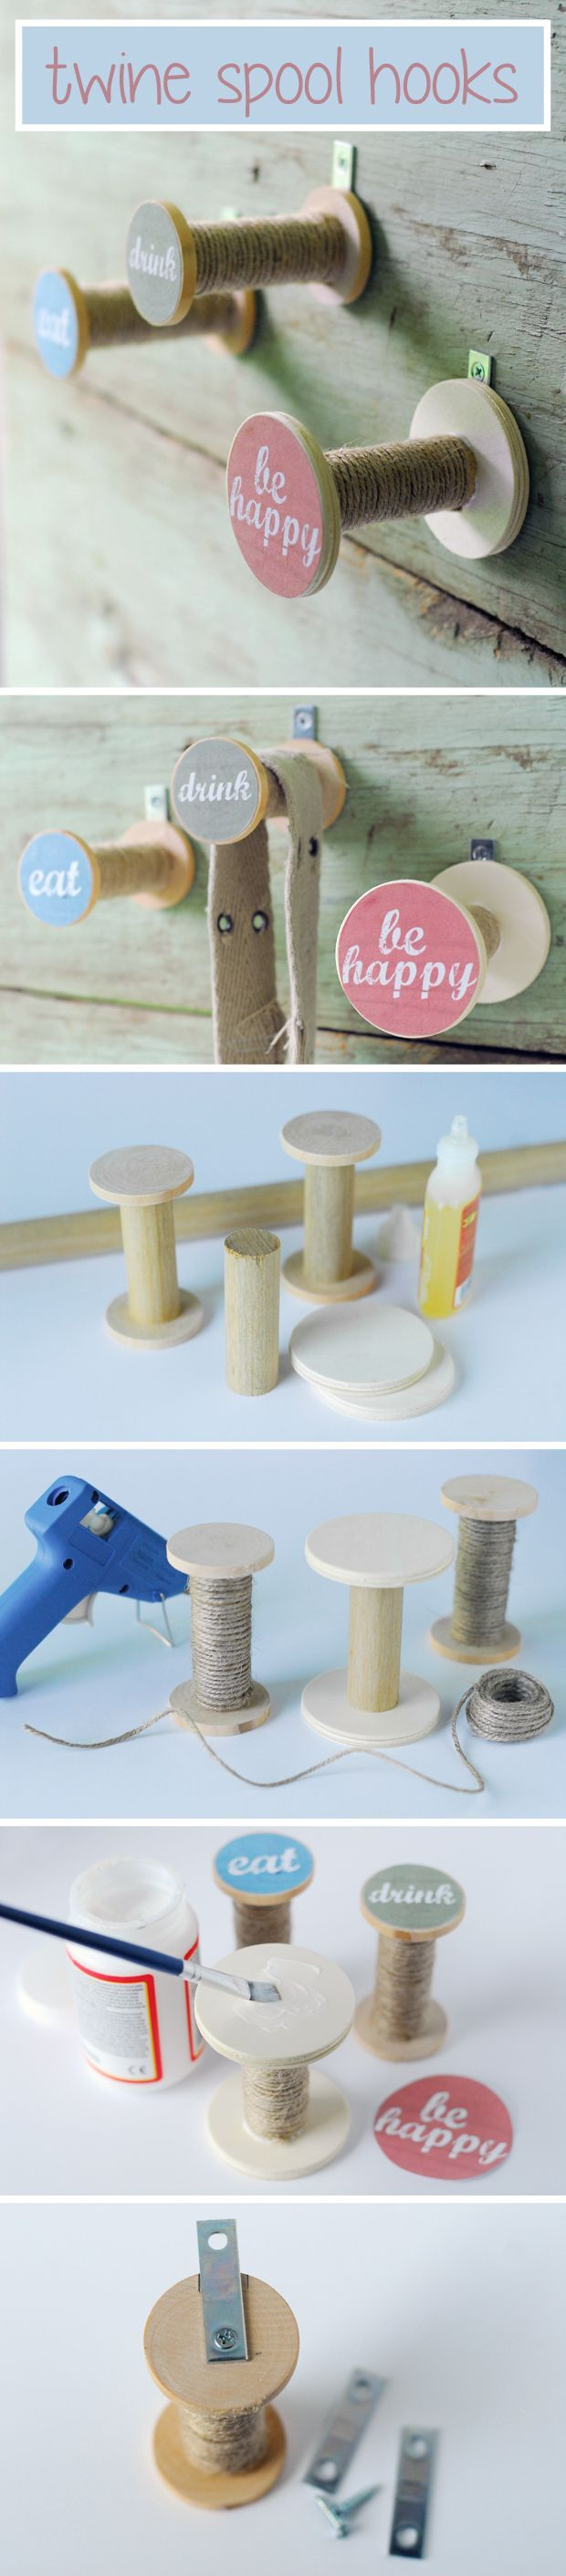 Upcycle empty (or almost empty) twine spools into cute hooks for around the house!  Eat, Drink and Be Happy Printables included! www.ehow.com/...